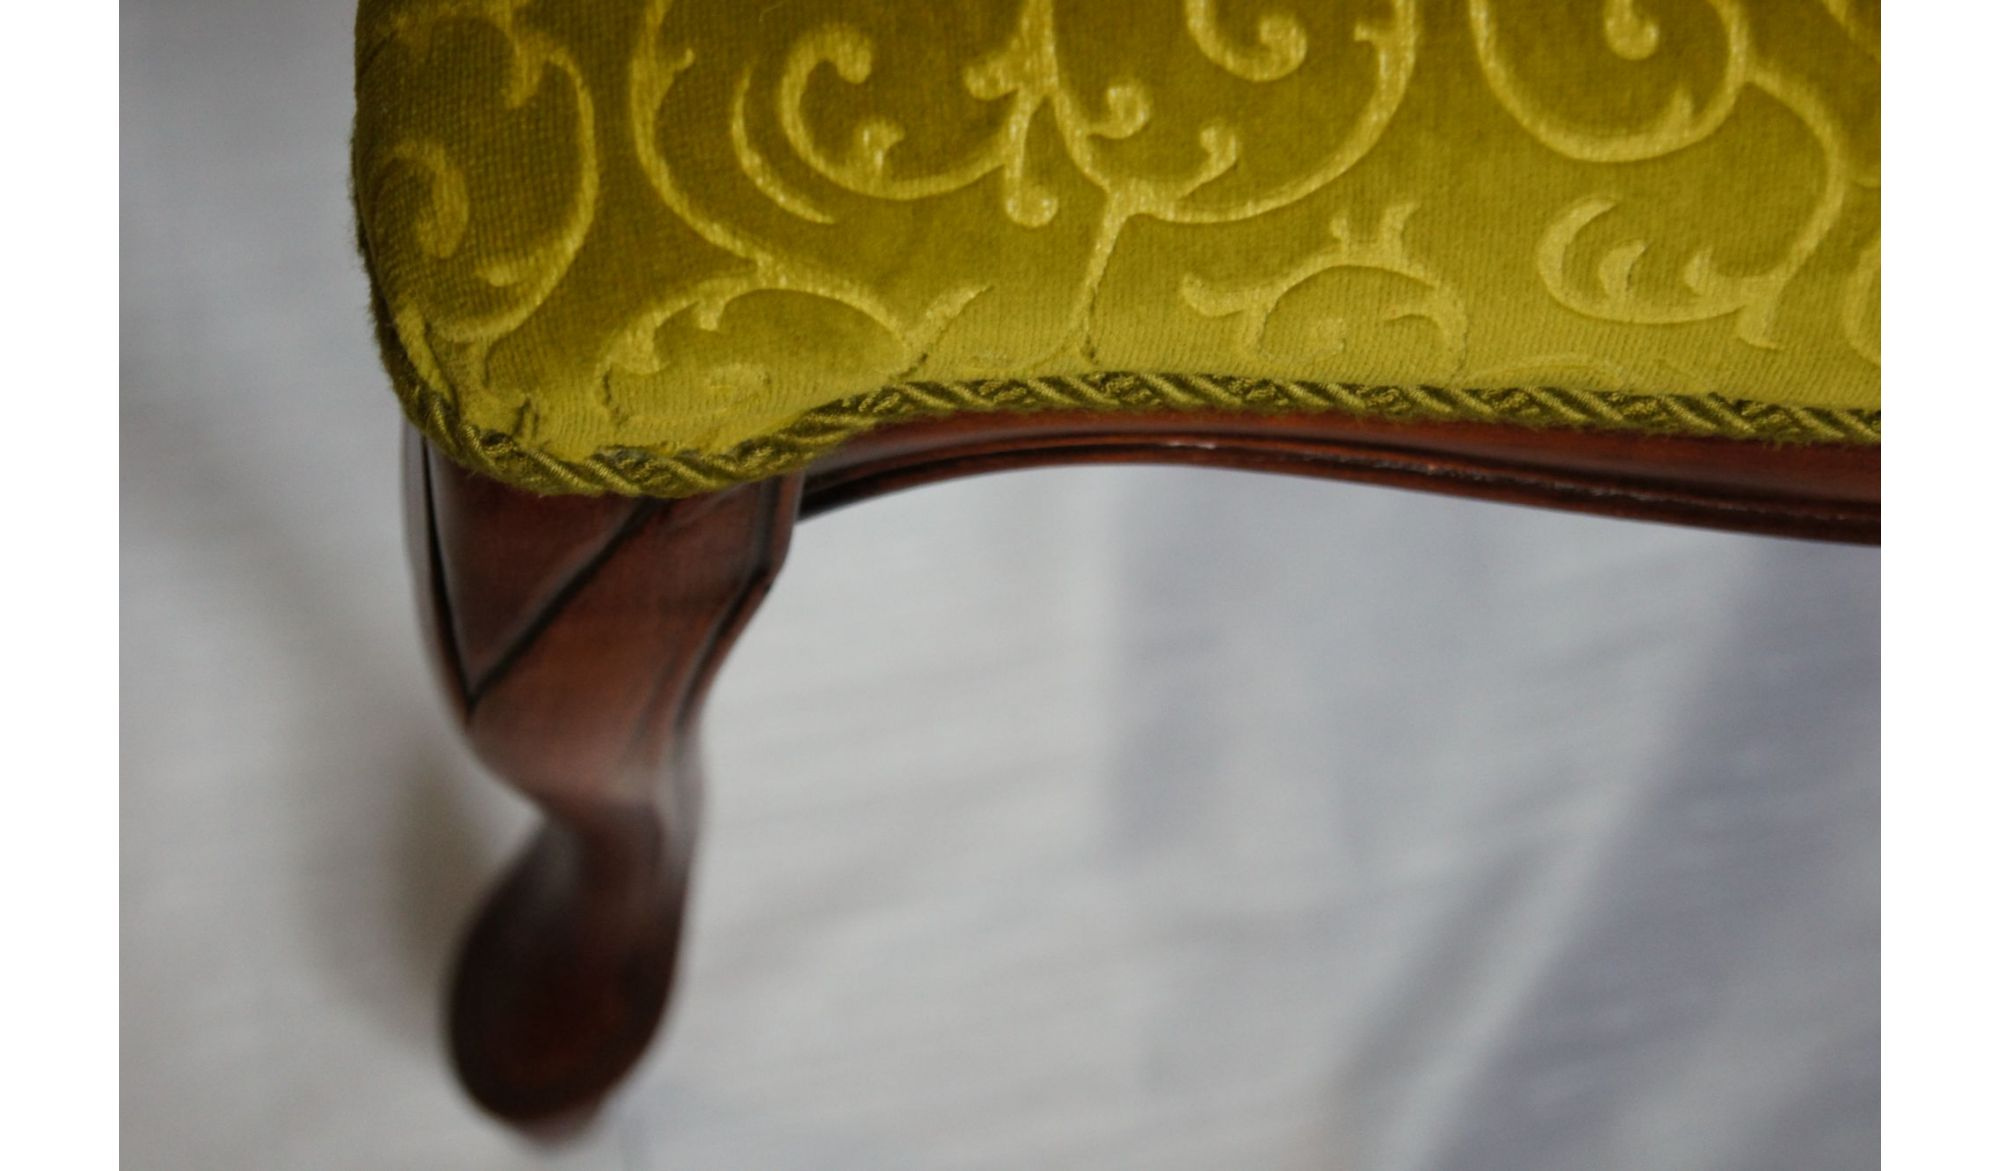 CORD 140030 212 - Trimmings alt_pasmanteria_kolor_212 decorative Upholstery - Visualisation